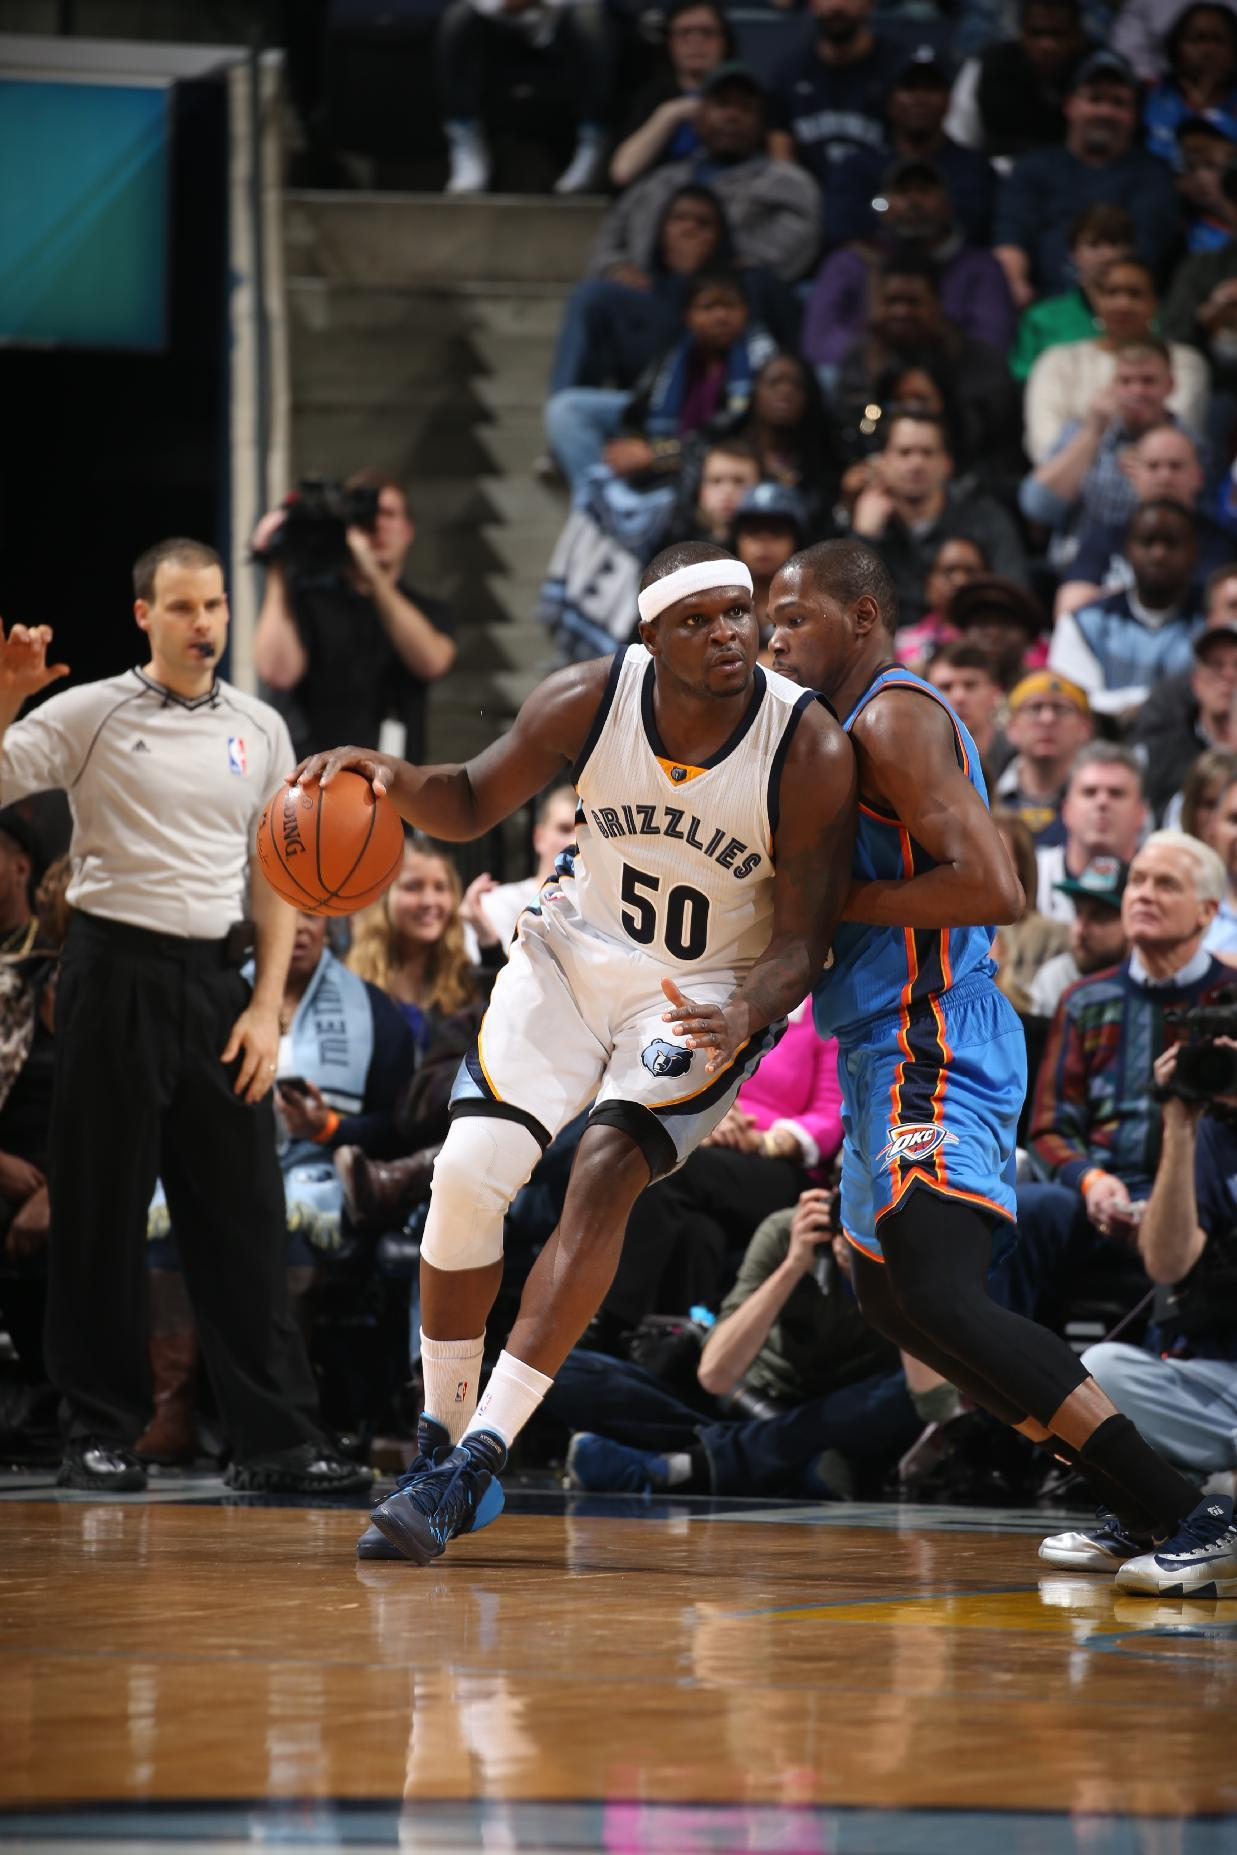 Randolph leads Grizzlies past Thunder 85-74 for 6th straight